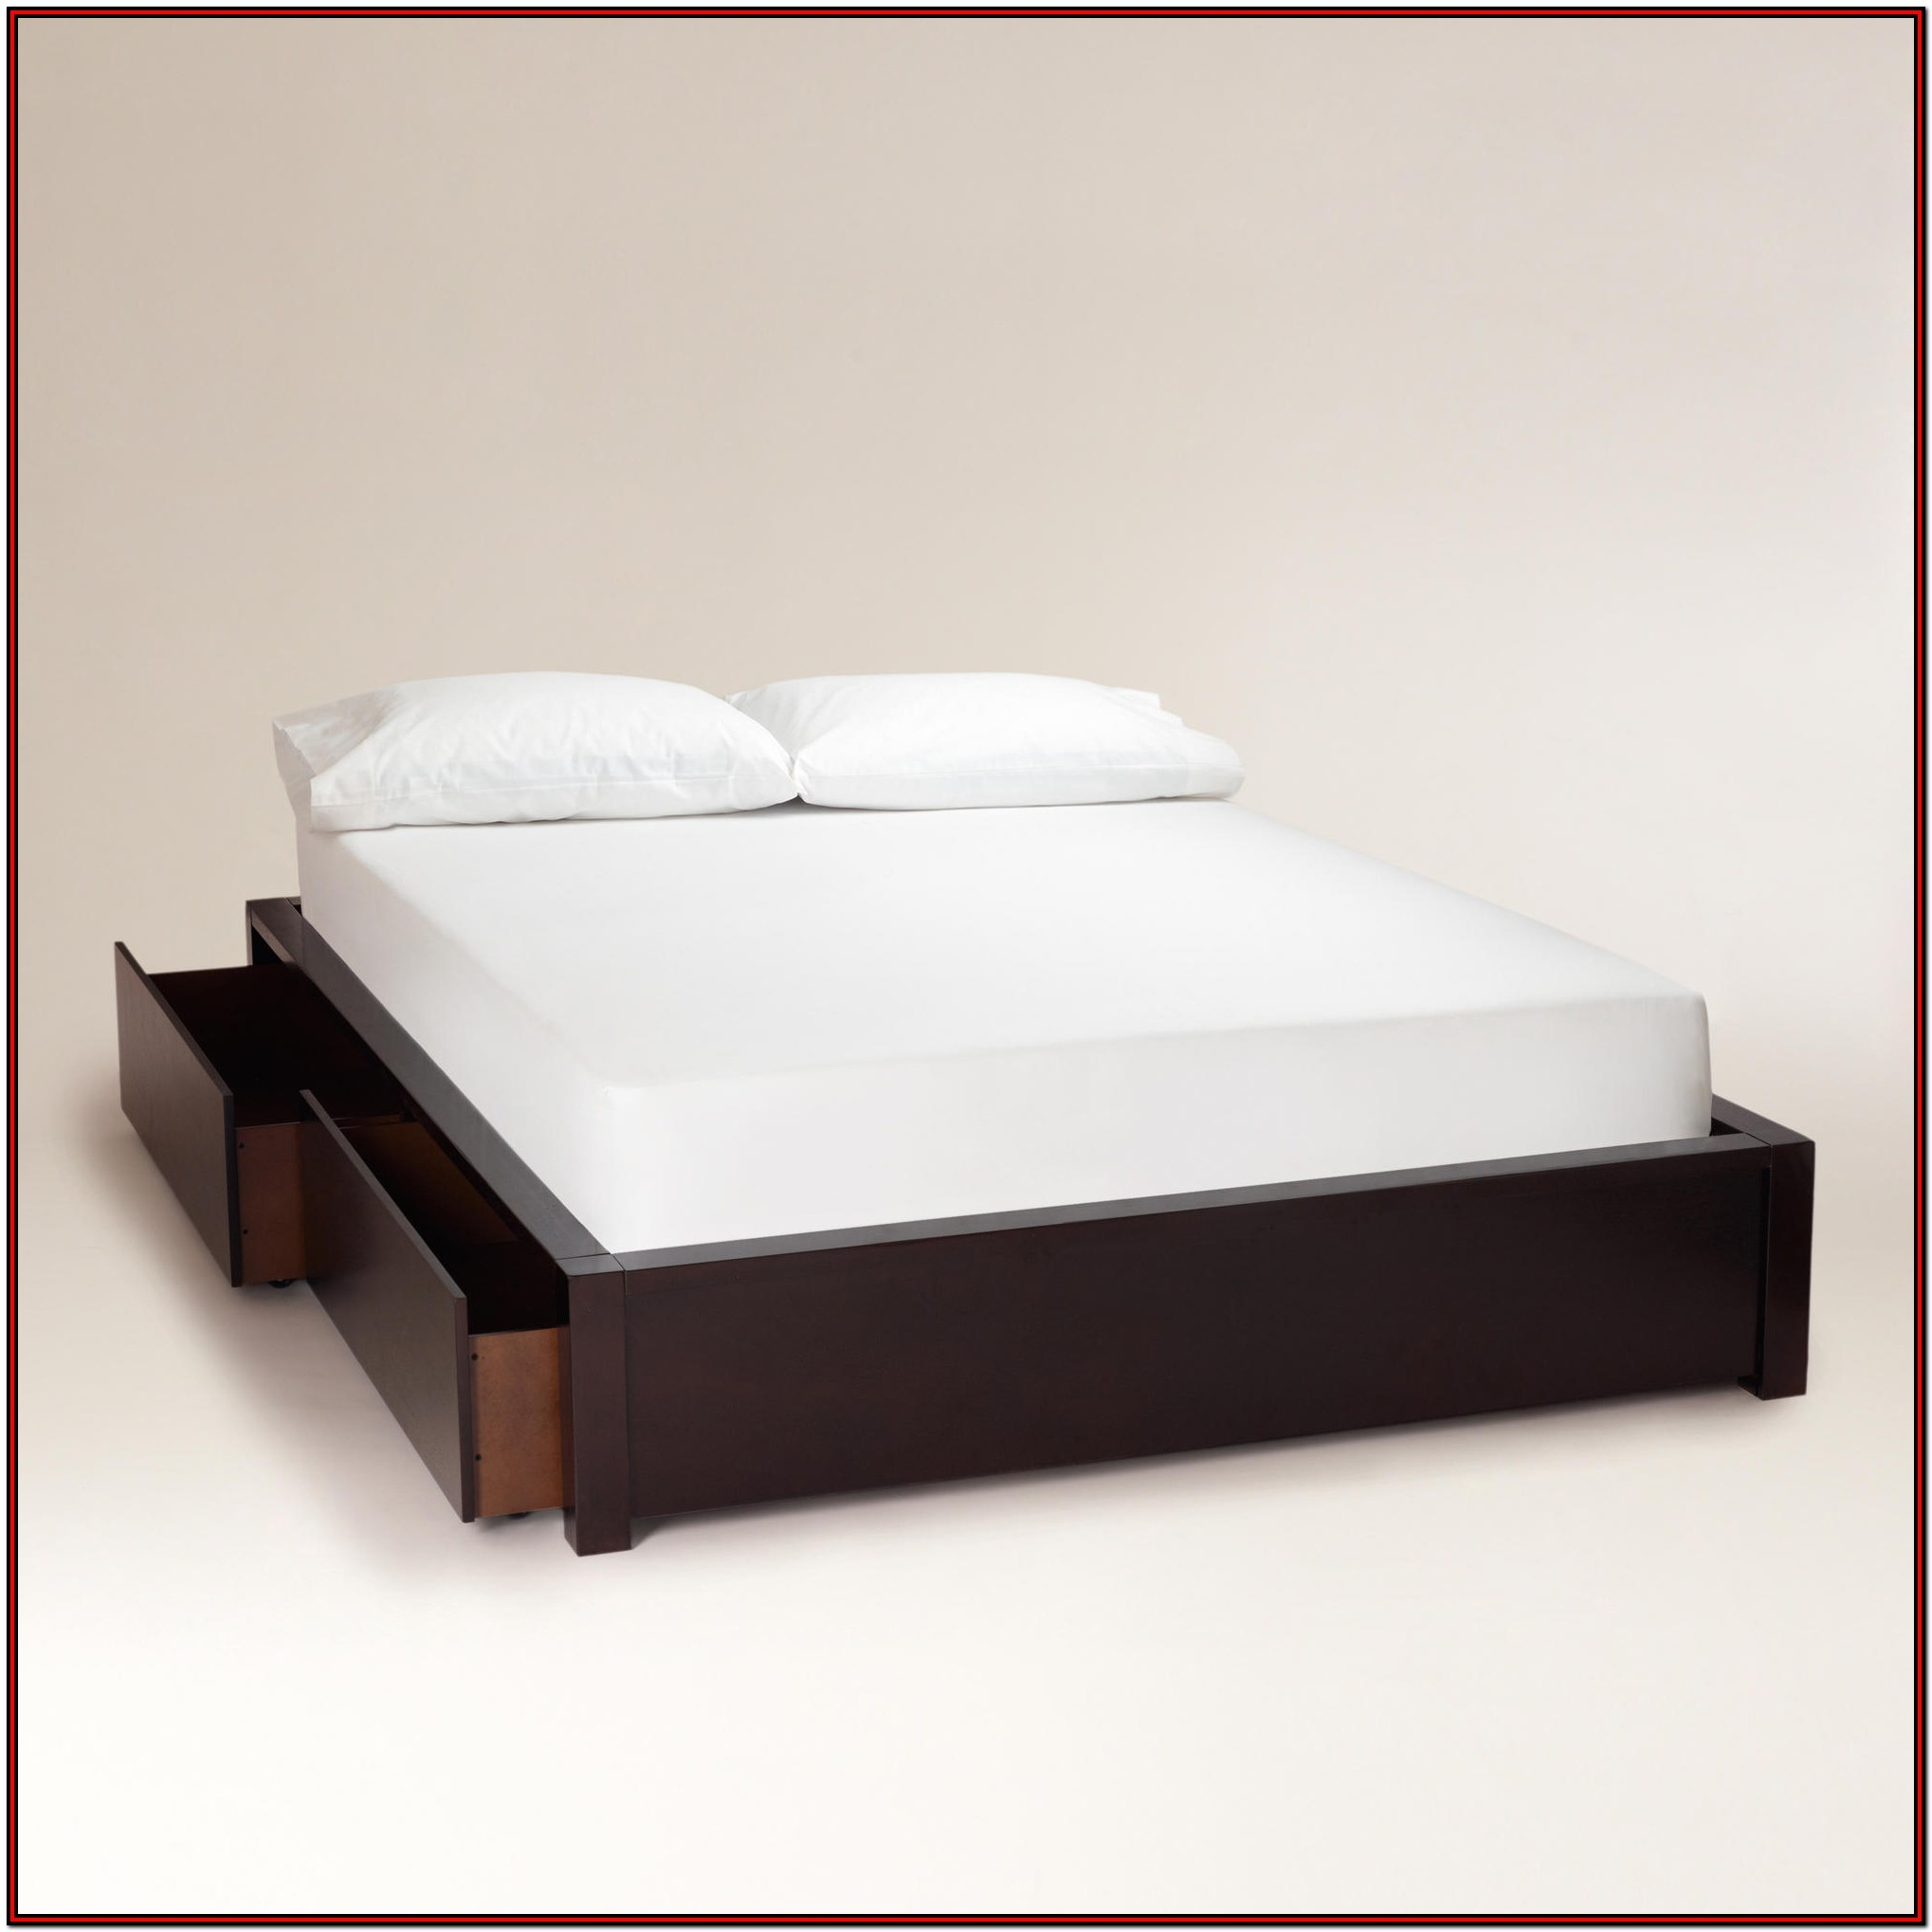 Queen Platform Bed With Storage And No Headboard